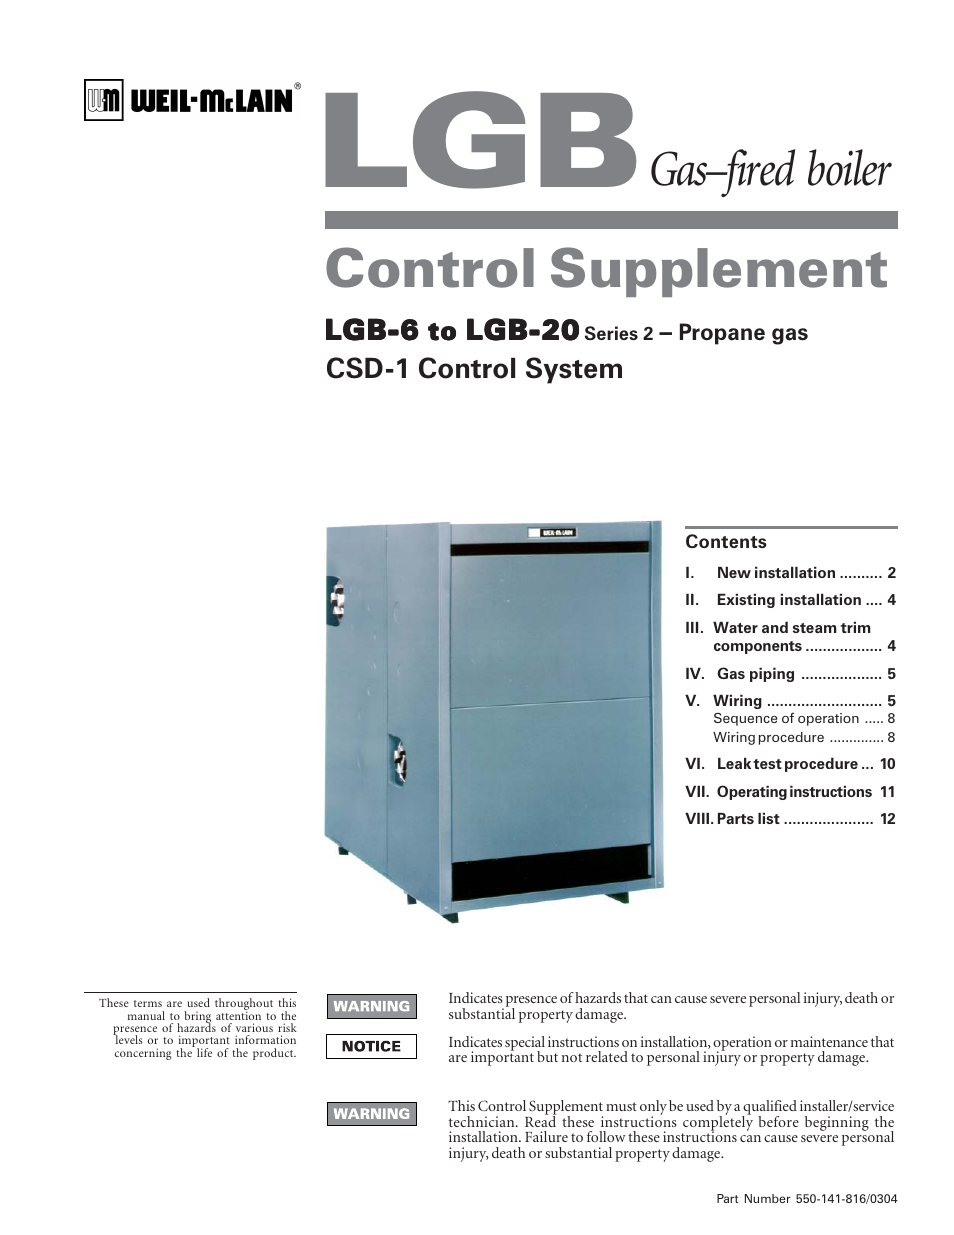 Weil-McLain LGB-6 User Manual | 12 pages